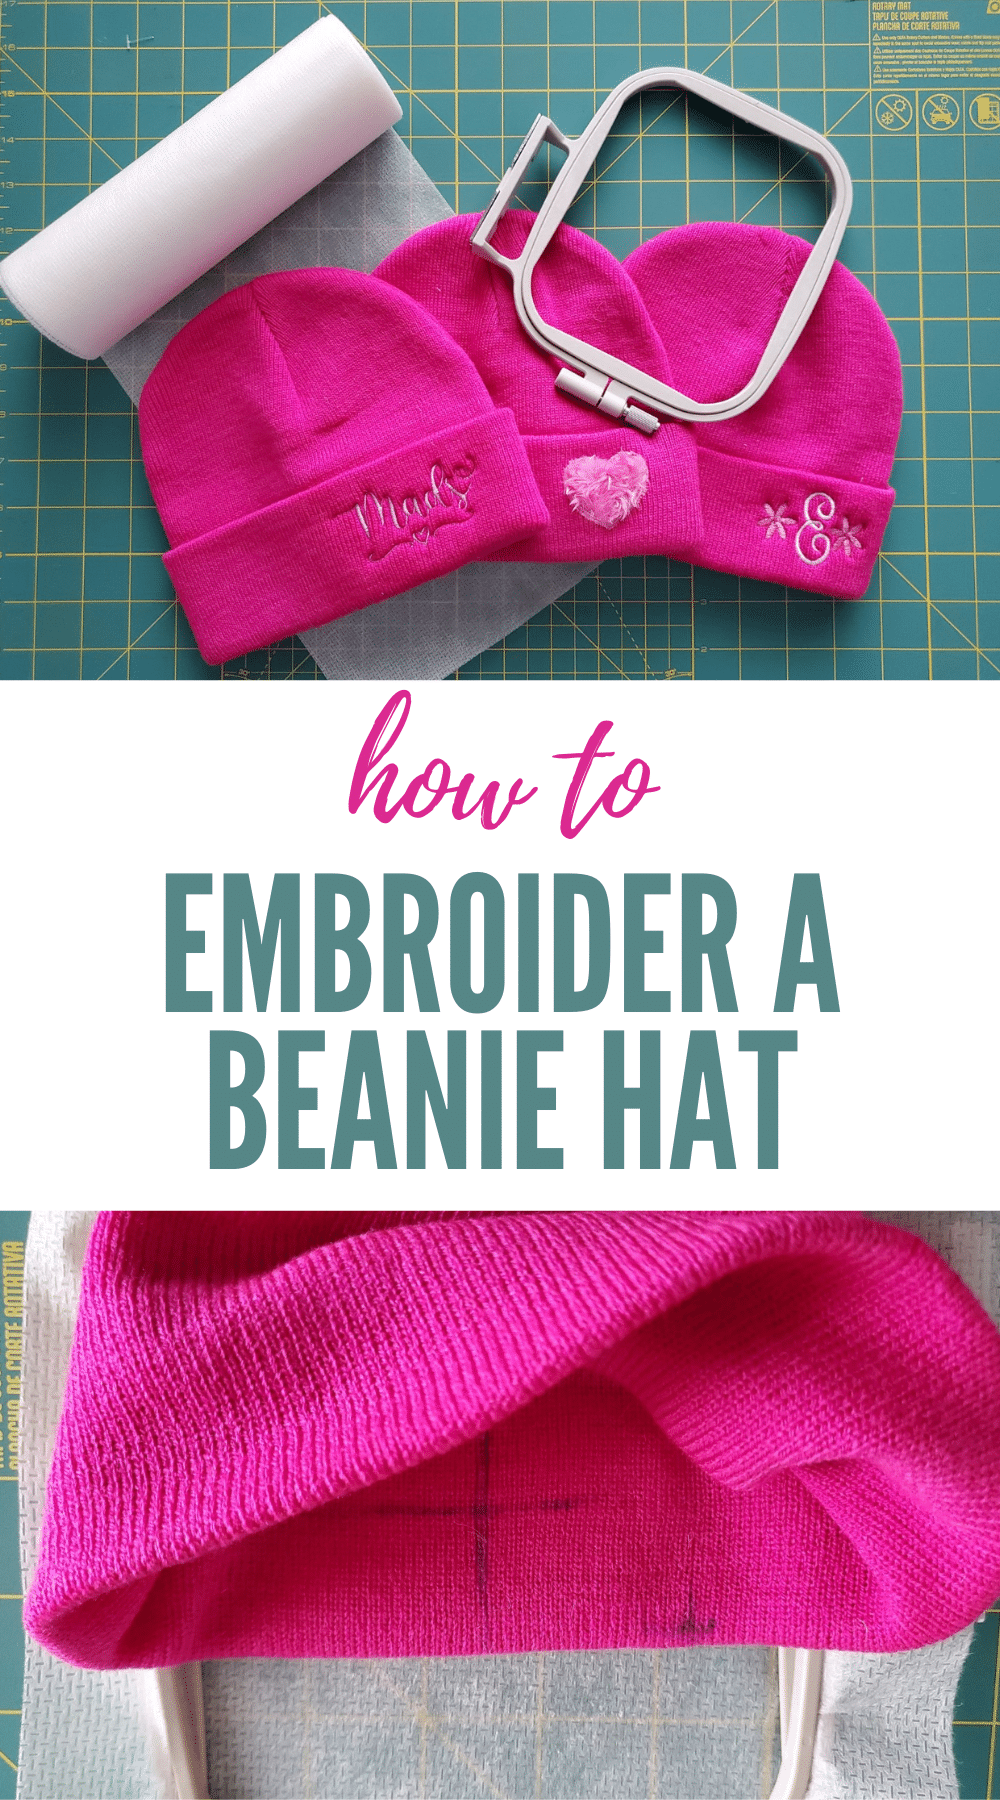 how to machine embroider a beanie hat